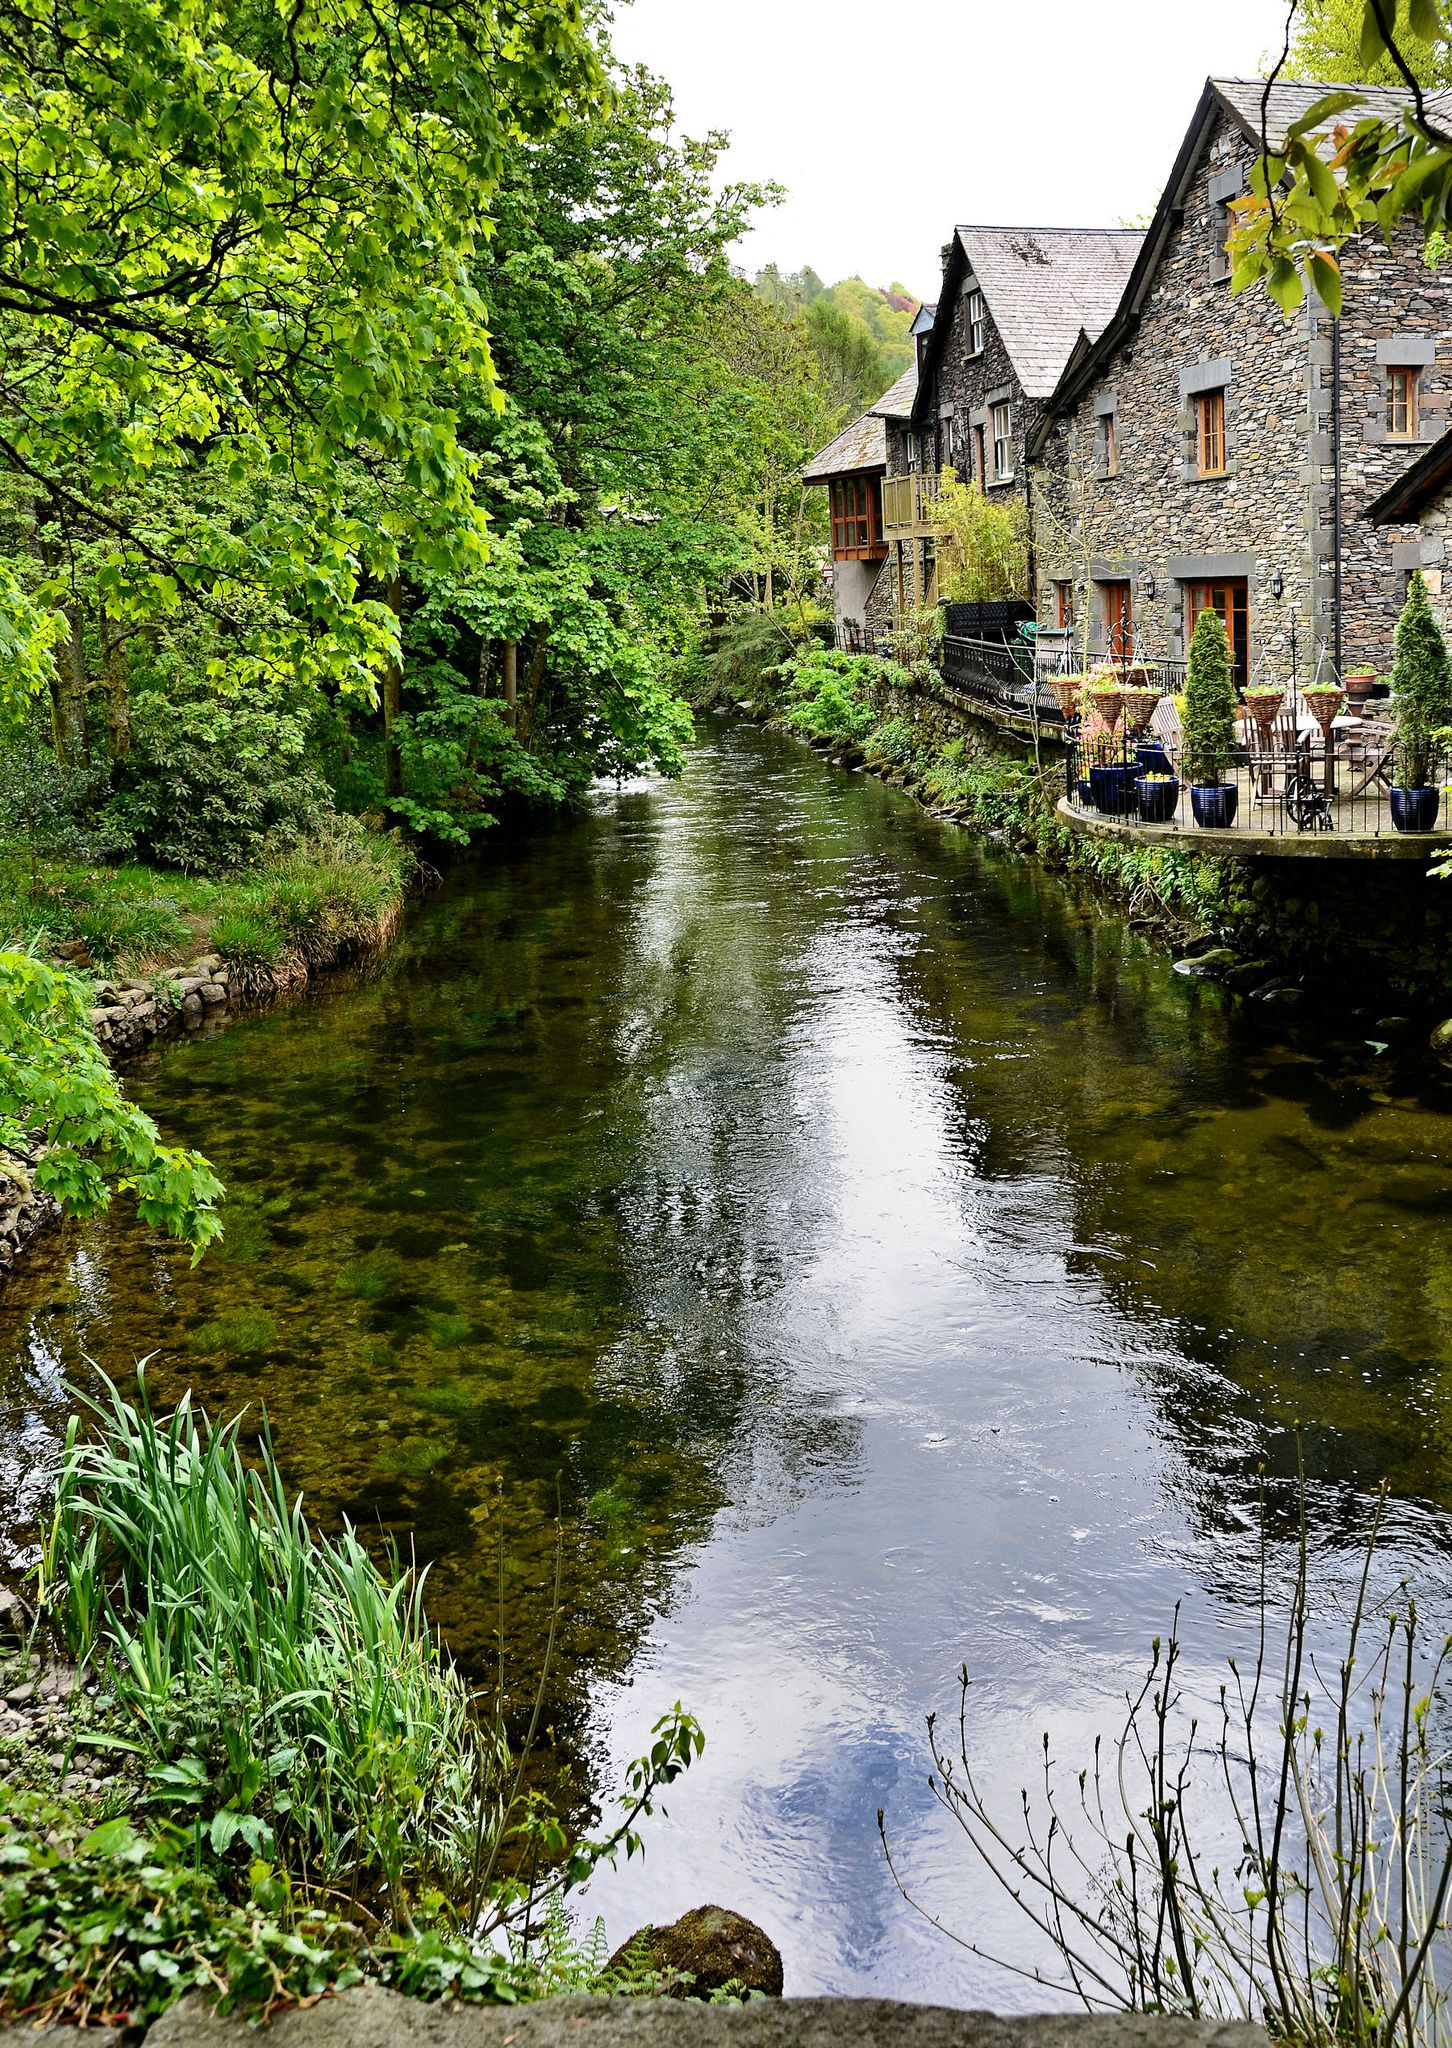 The River Rothay flowing through Grasmere in the Lake District.